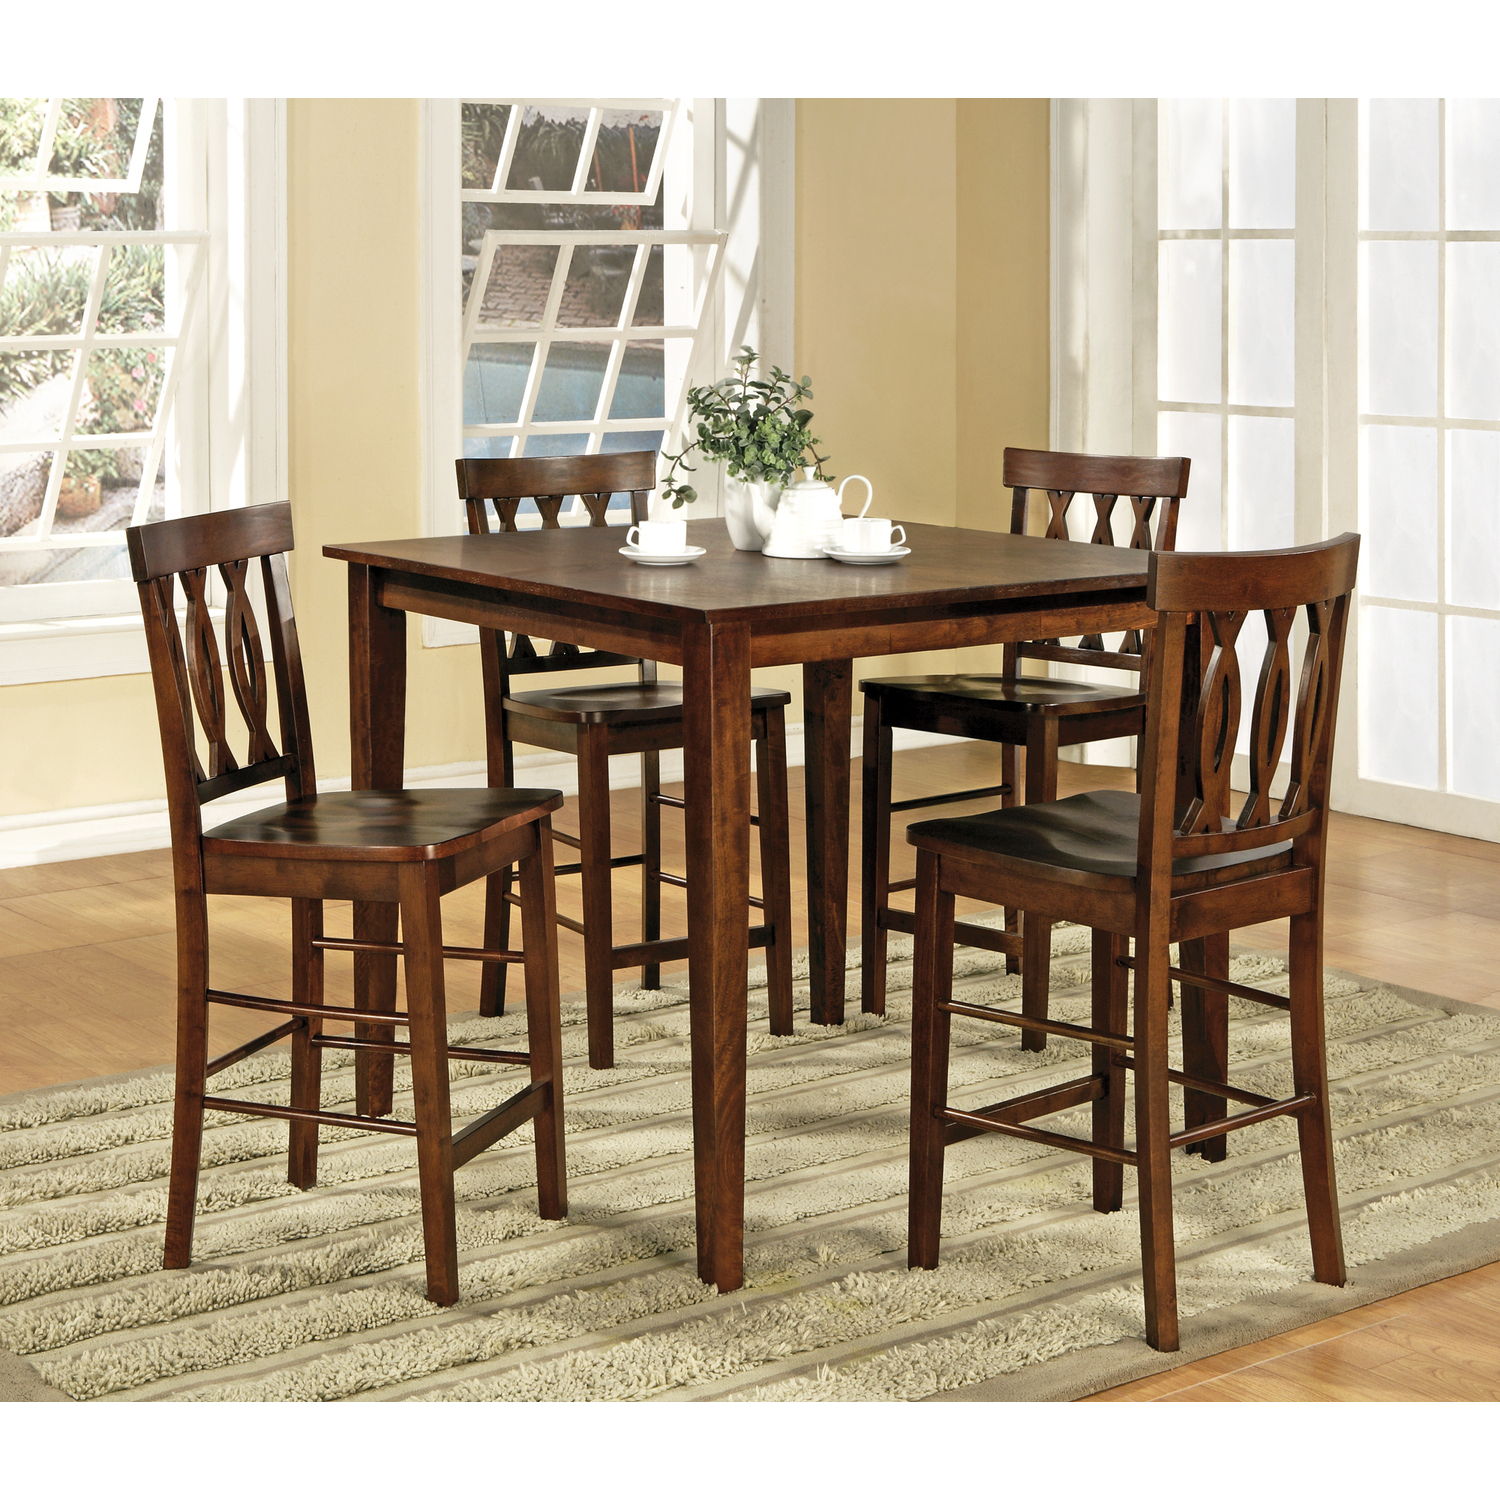 Steve Silver Richmond Counter Dining Table 5 Pc Set By OJ Commerce 400